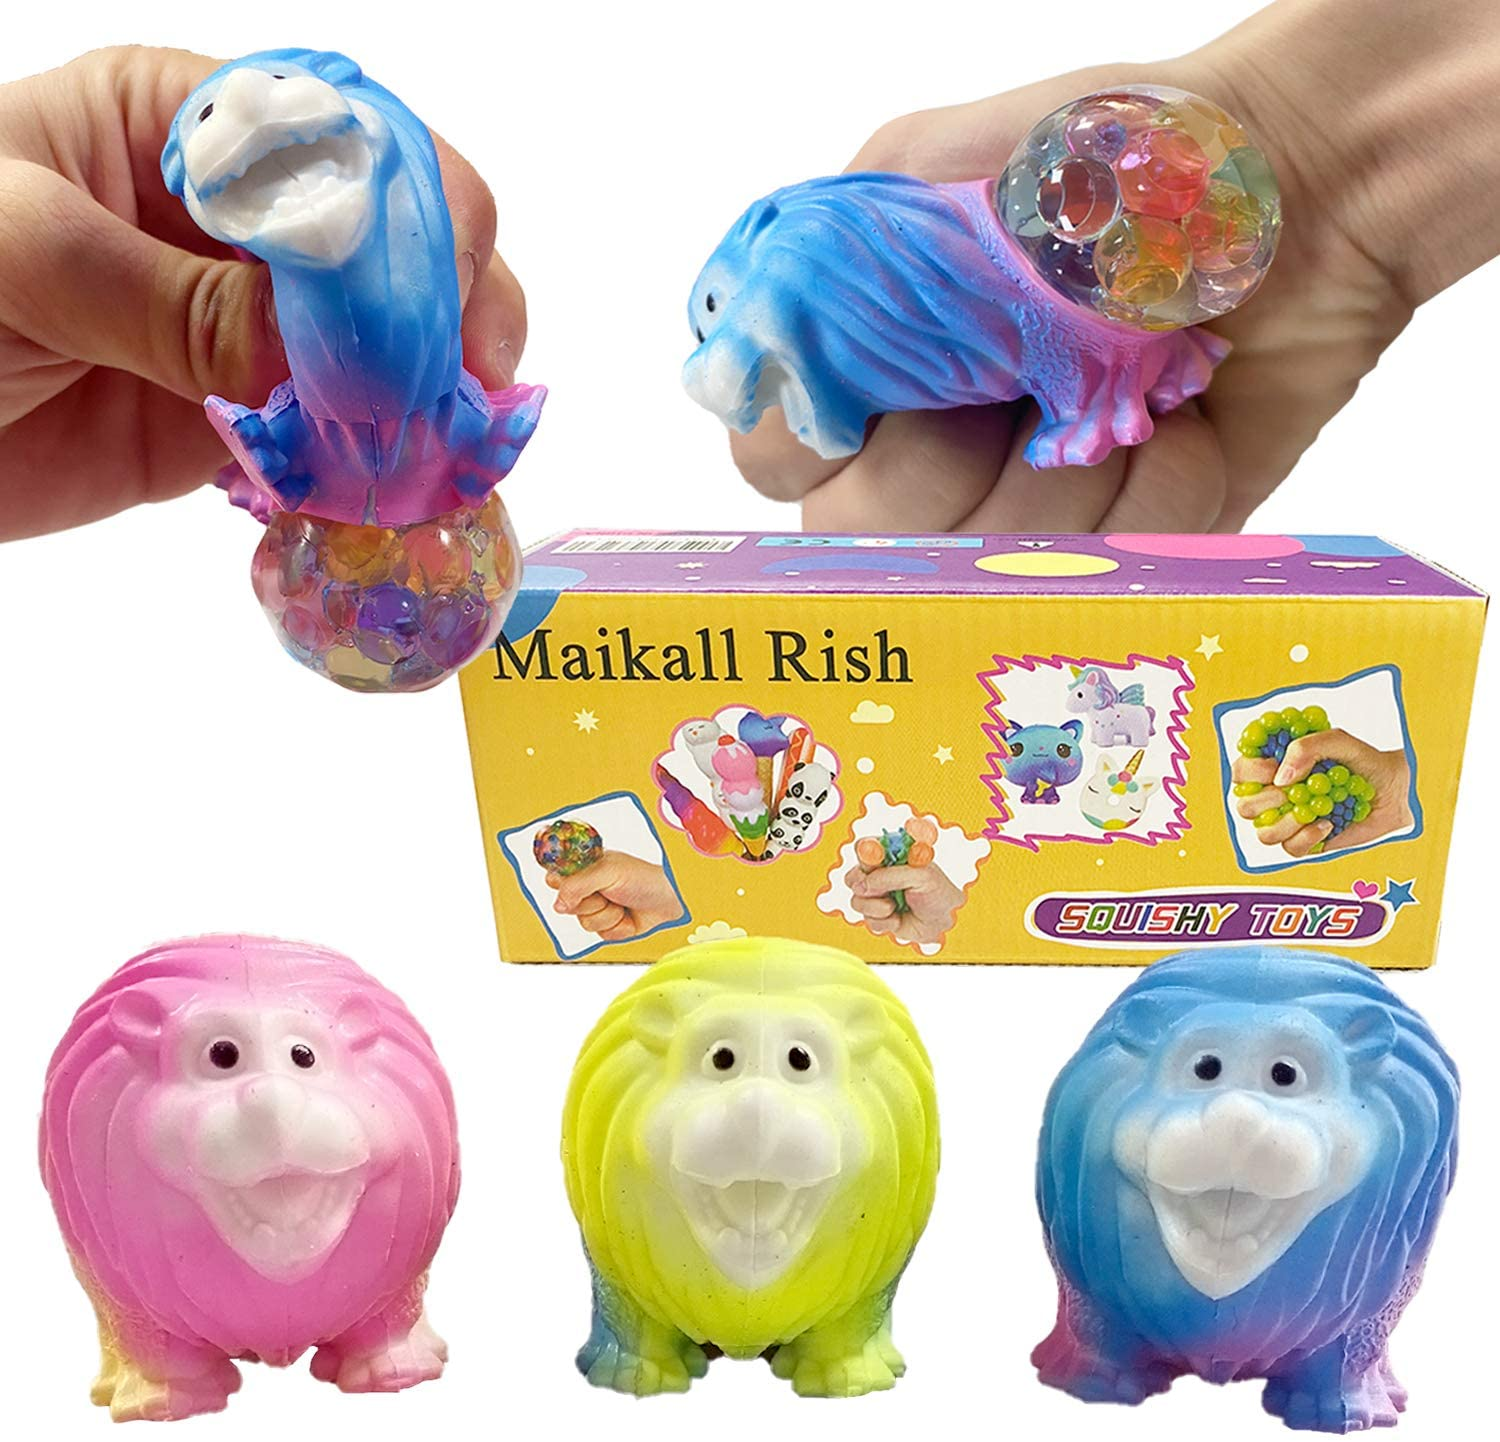 Maikall Rish Colorful Lion Stress Release Squeeze Toys 3 Pack is Perfect for Stress and Anxiety Relief The Best Choice for Adults and Kids with Autism and ADHD